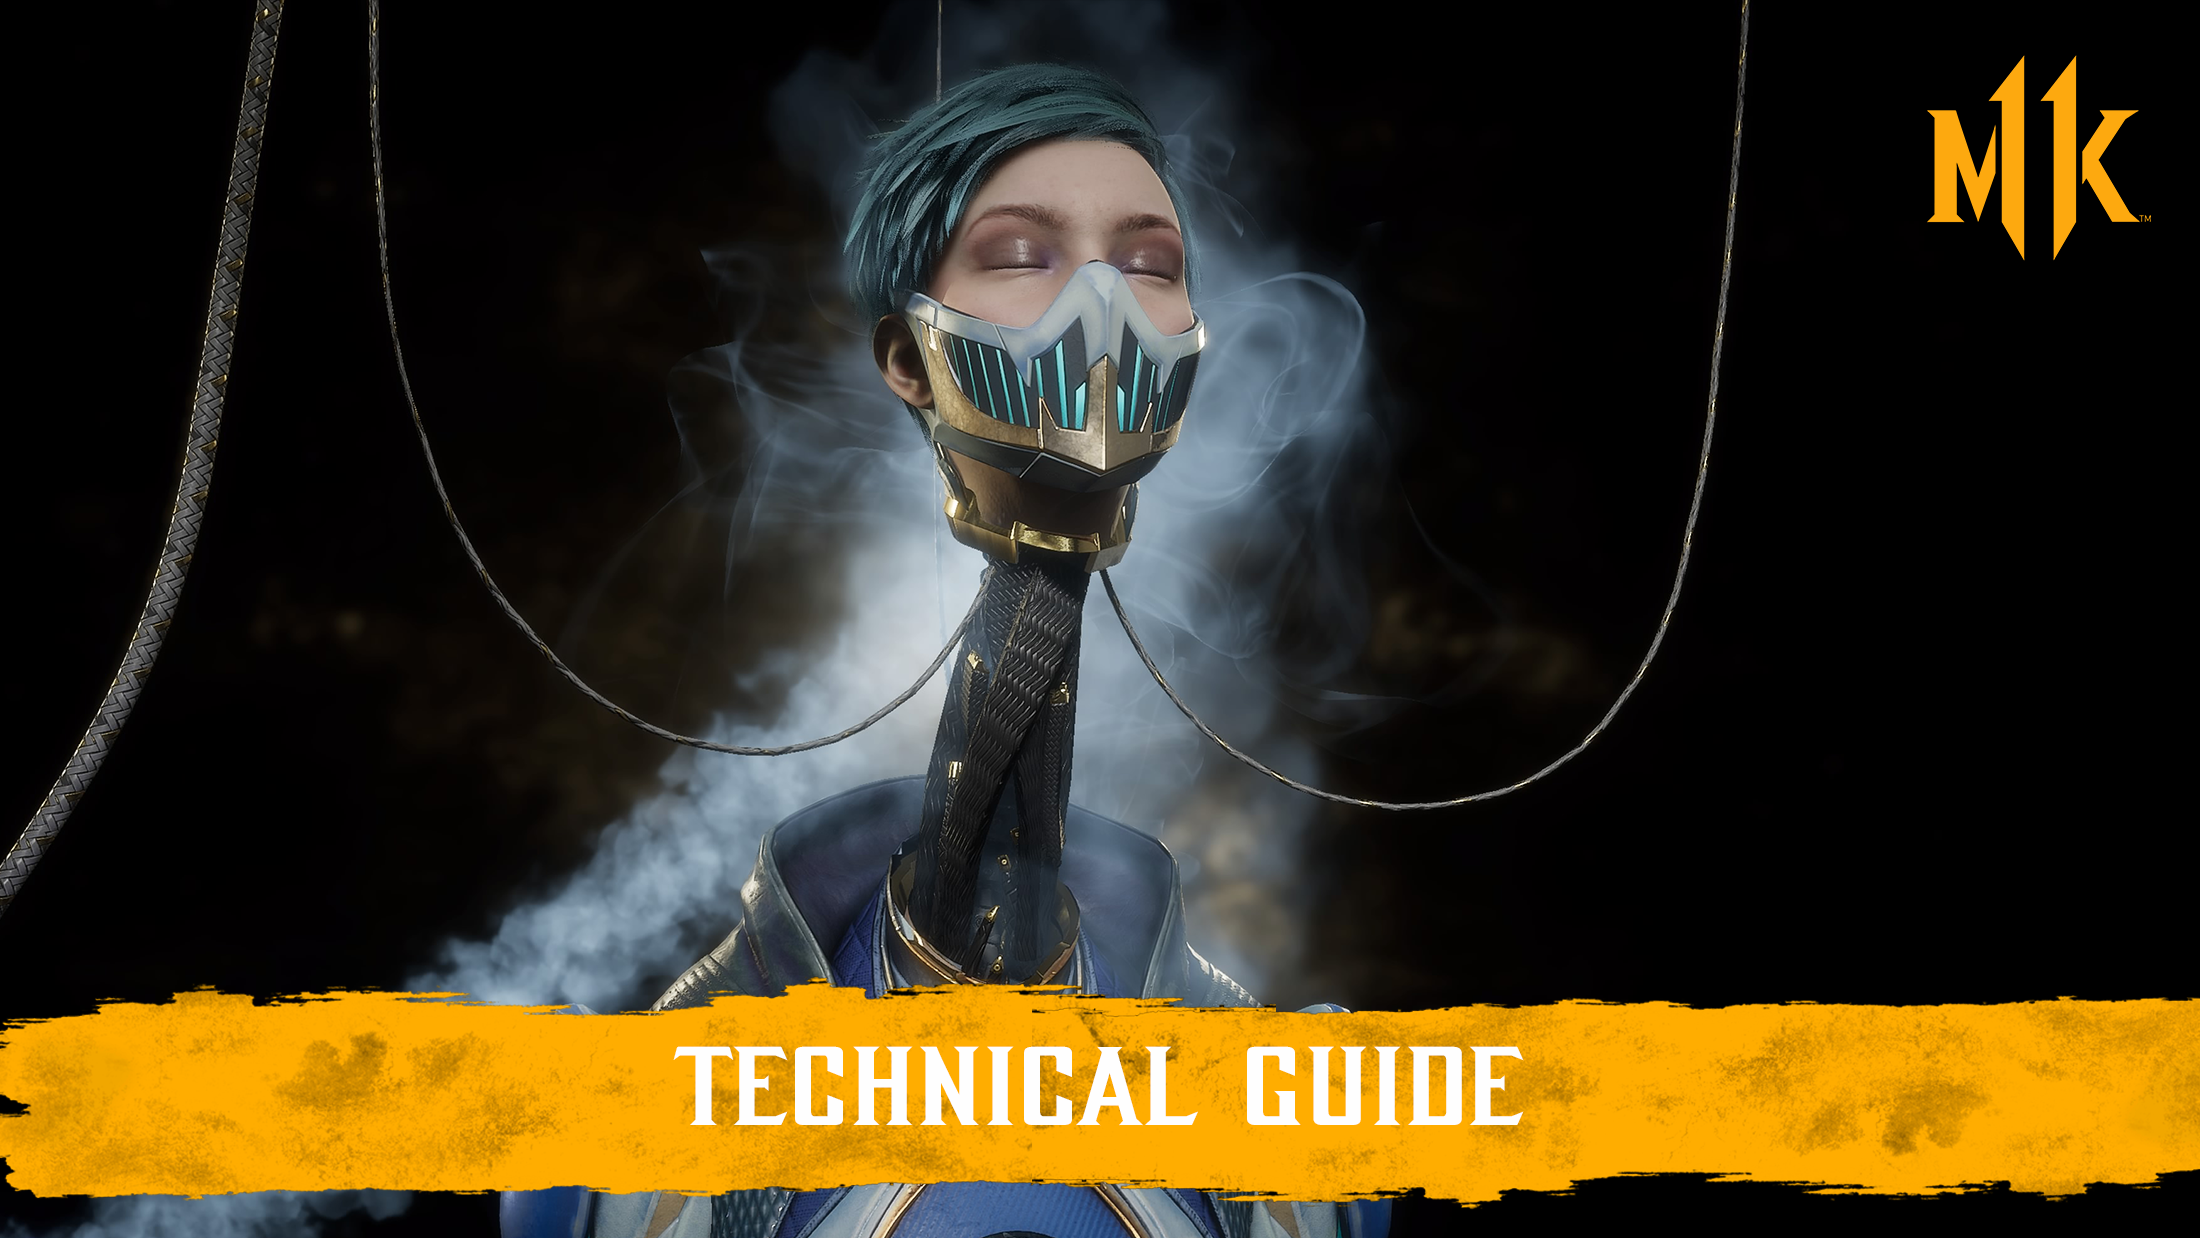 TECHNICAL_GUIDE.png